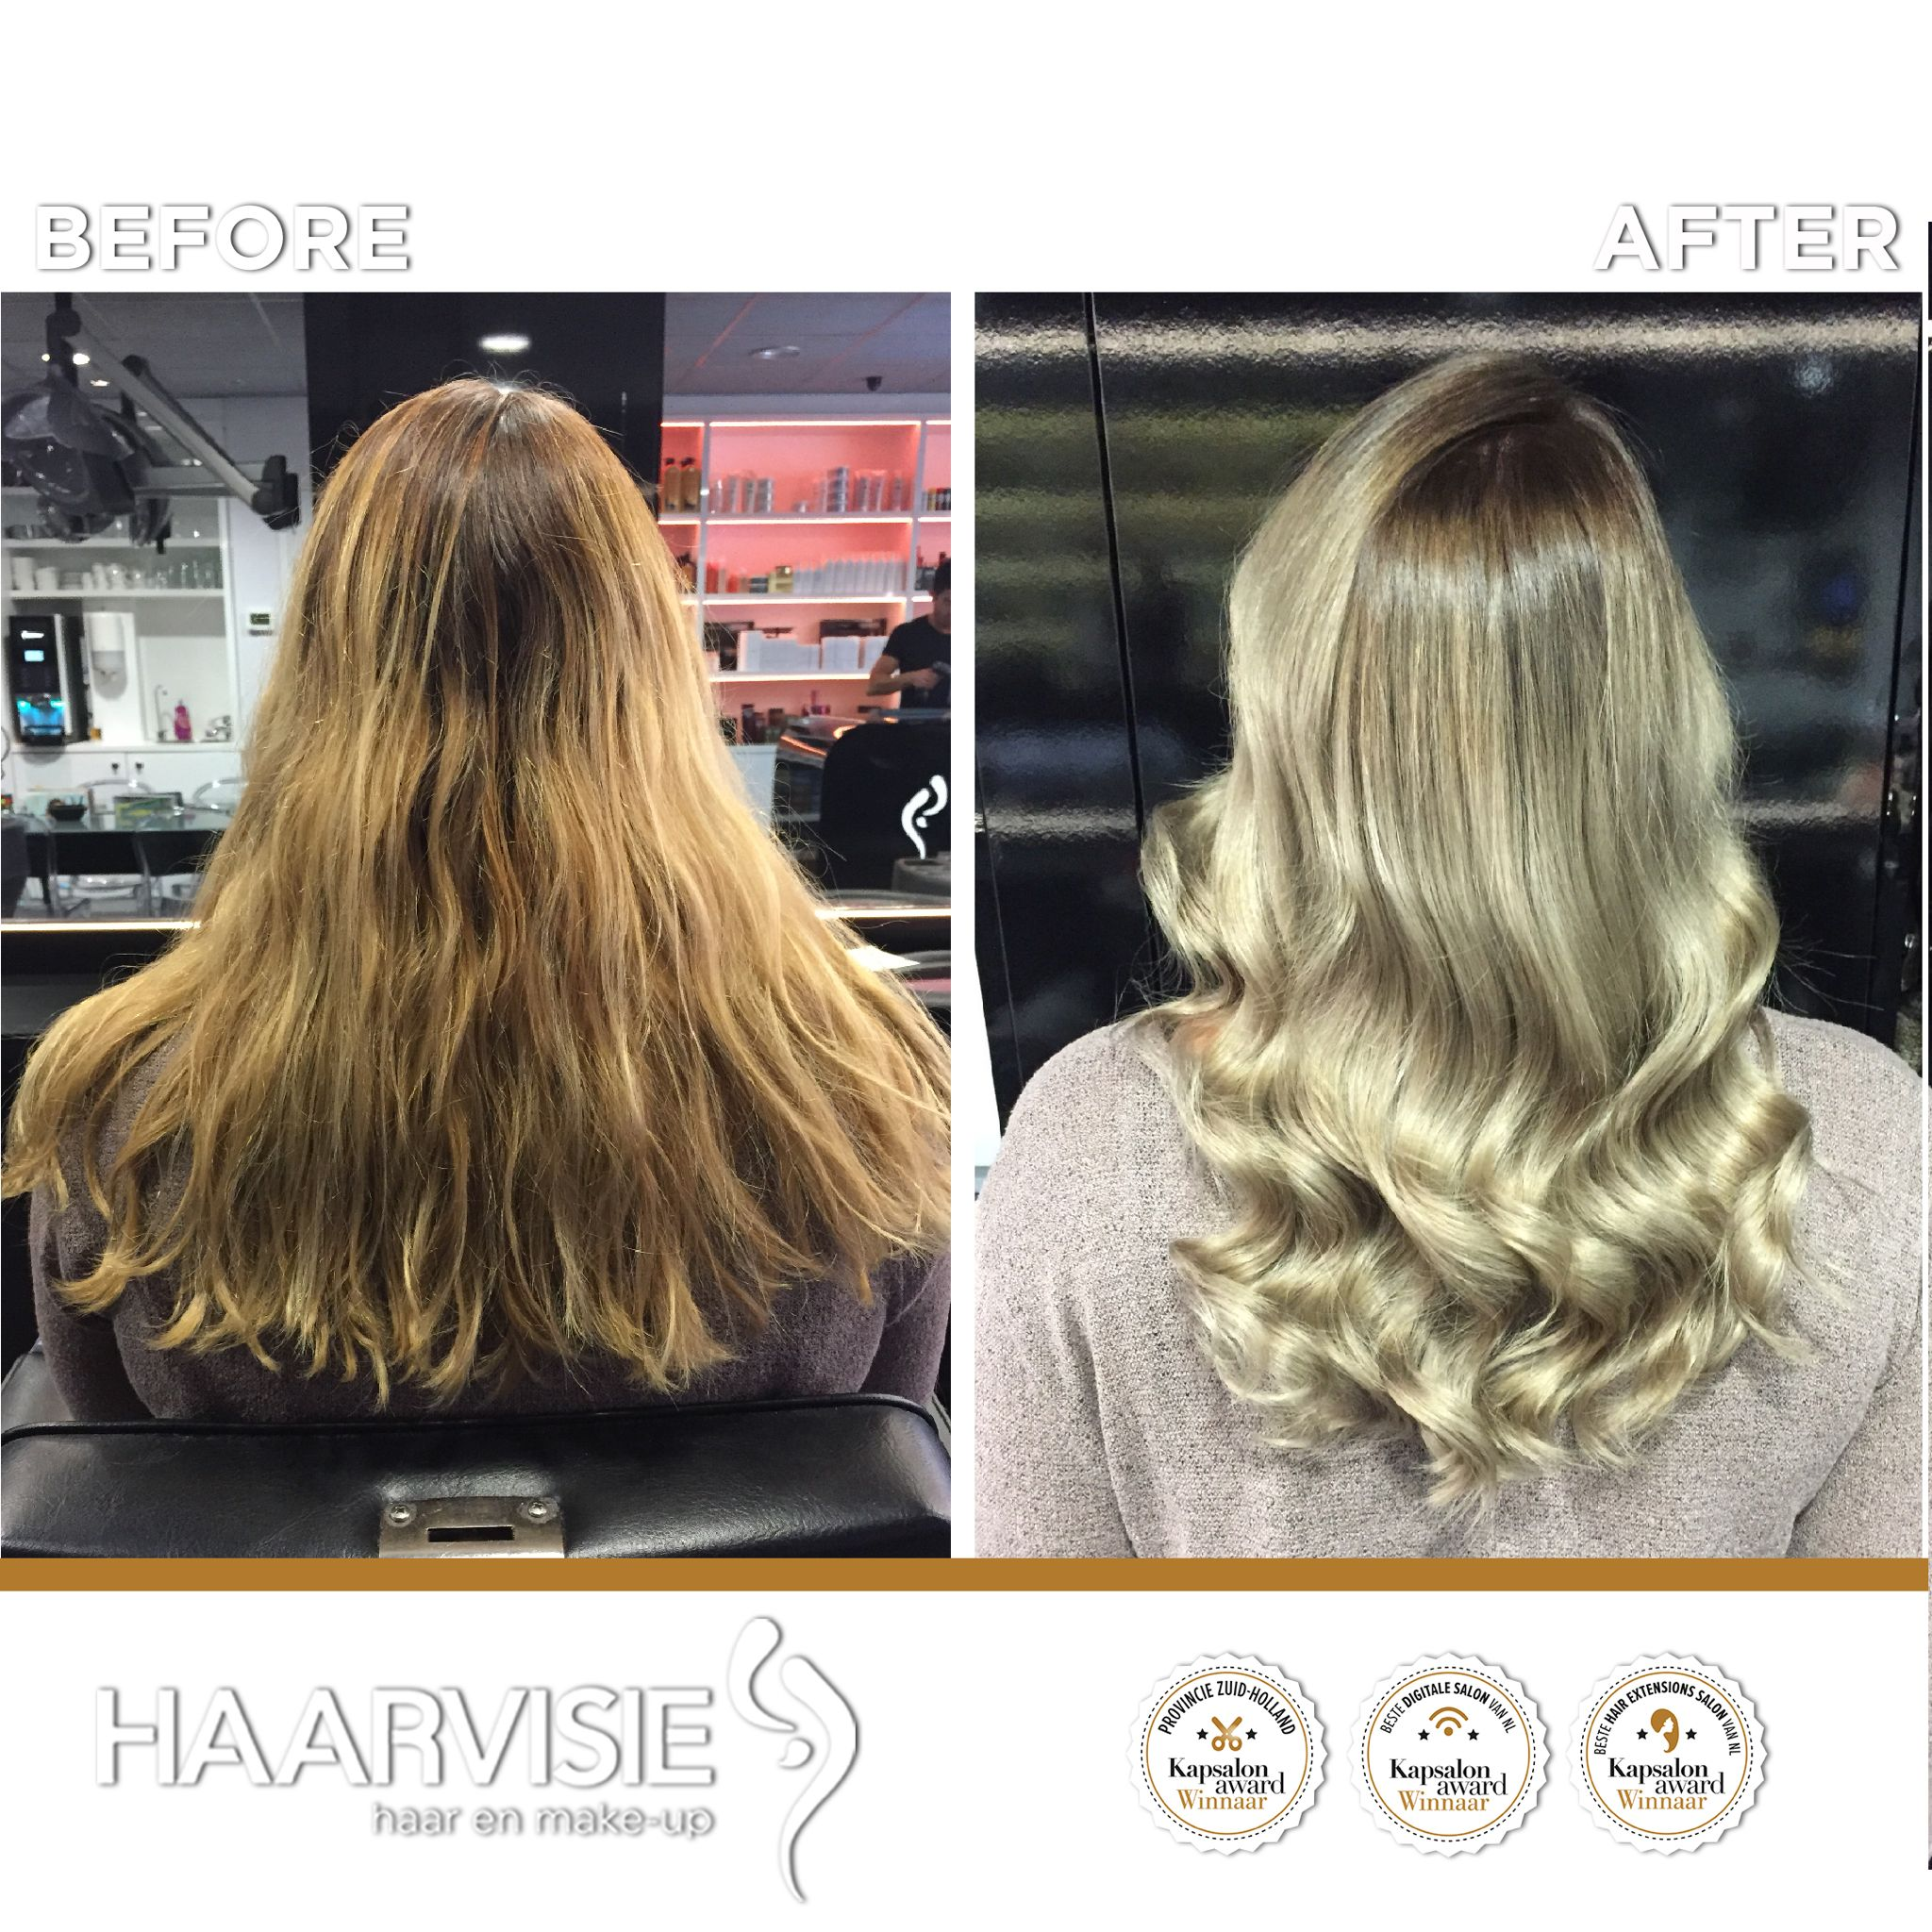 Cool blonde balayage hair Dark roots and fresh blond ends Colored